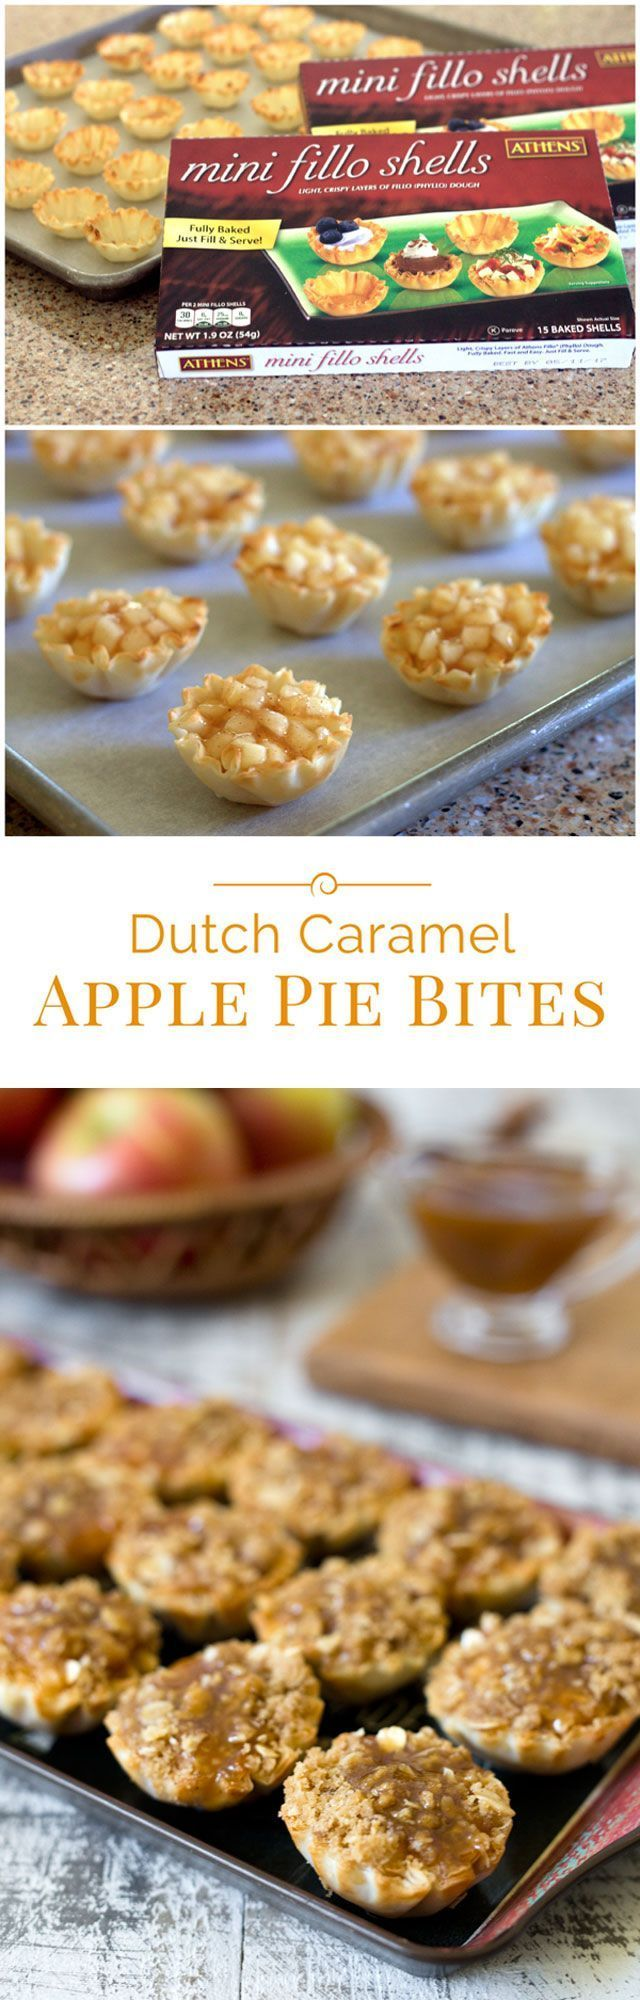 These Dutch Caramel Apple Pie Bites are a fun, bite-size version of a Dutch apple pie in a flaky, ready-made mini shell with a caramel drizzle on top.